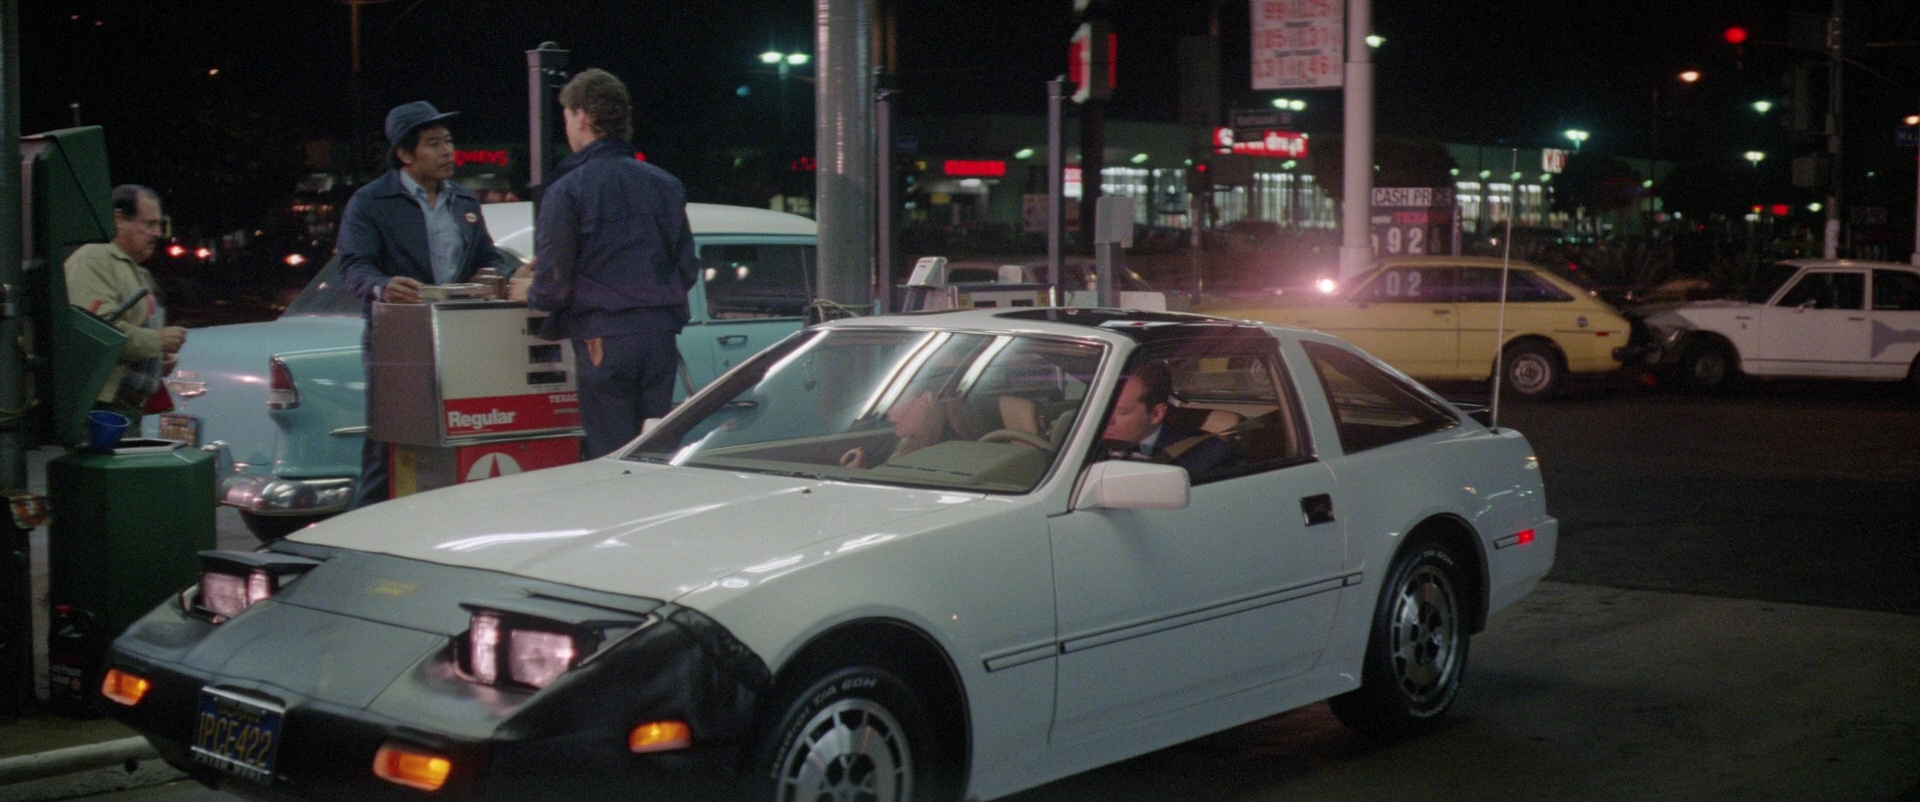 the Z31 300ZX 2+2 driven by Bruce Willis in BLIND DATE